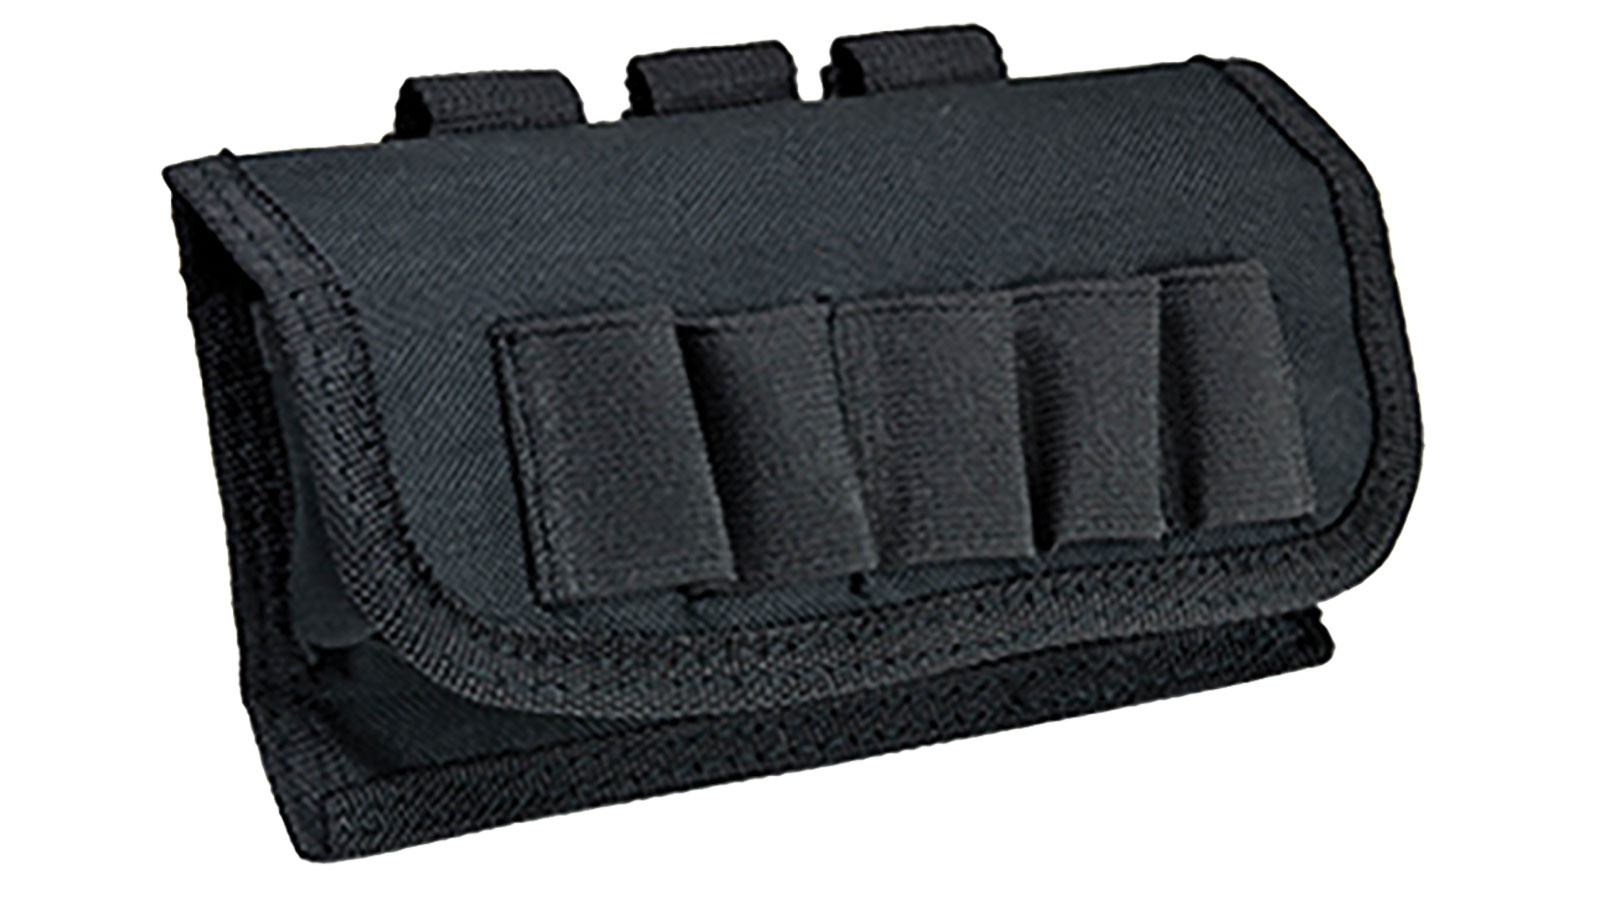 NCStar Tactical Shotshell Carrier|Black